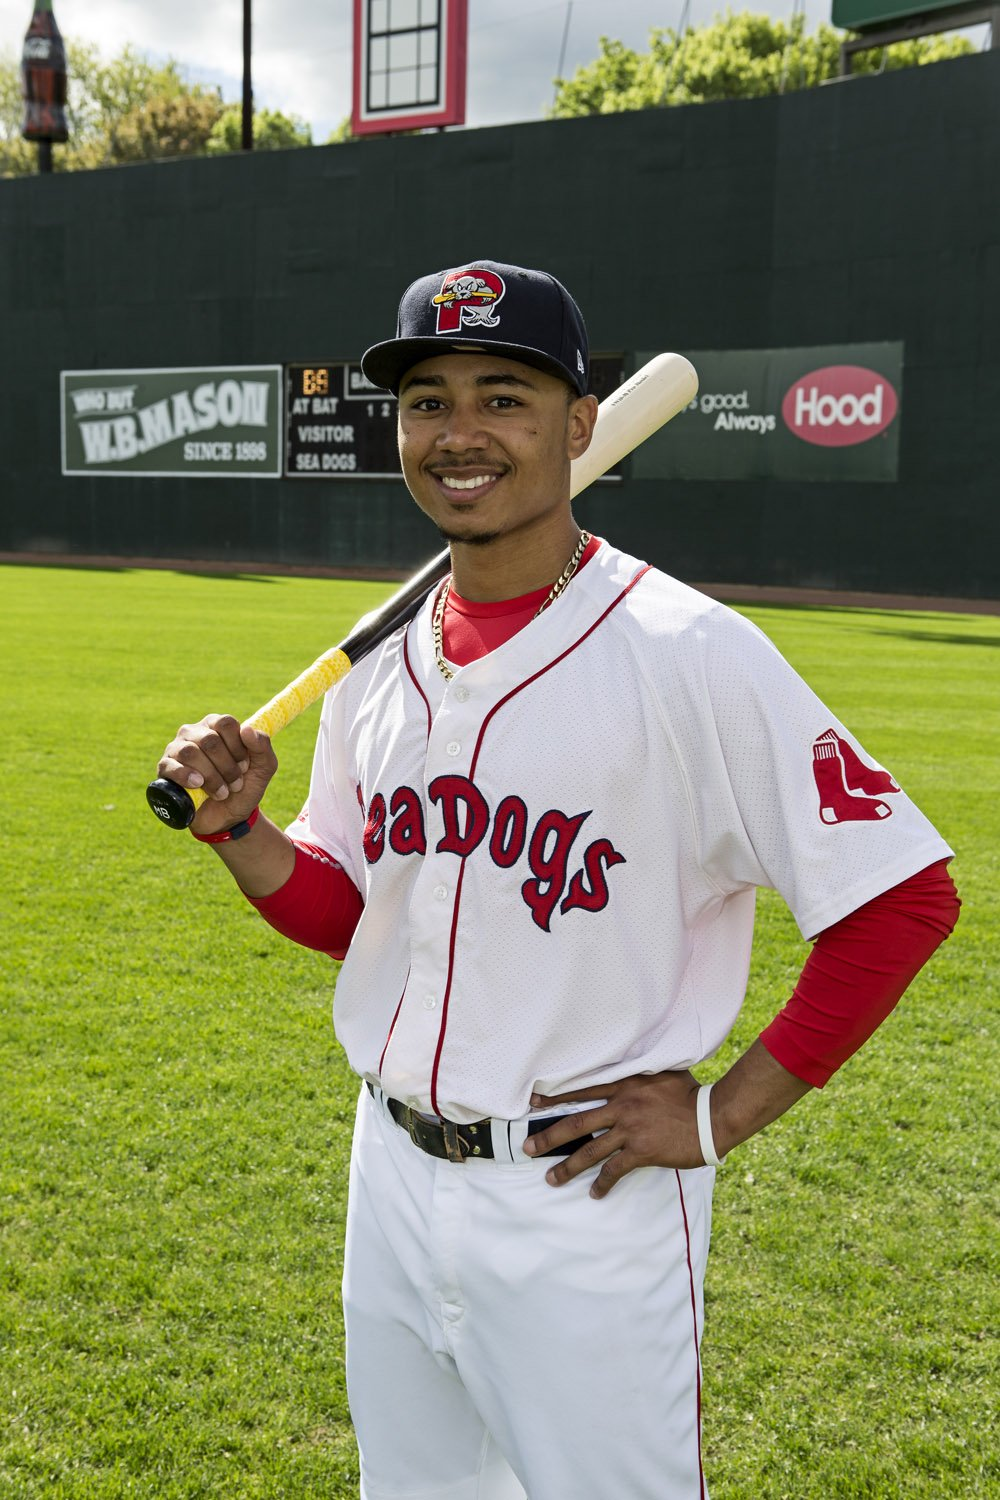 Mookie Betts former Sea Dogs player who now plays for the Boston Red Sox